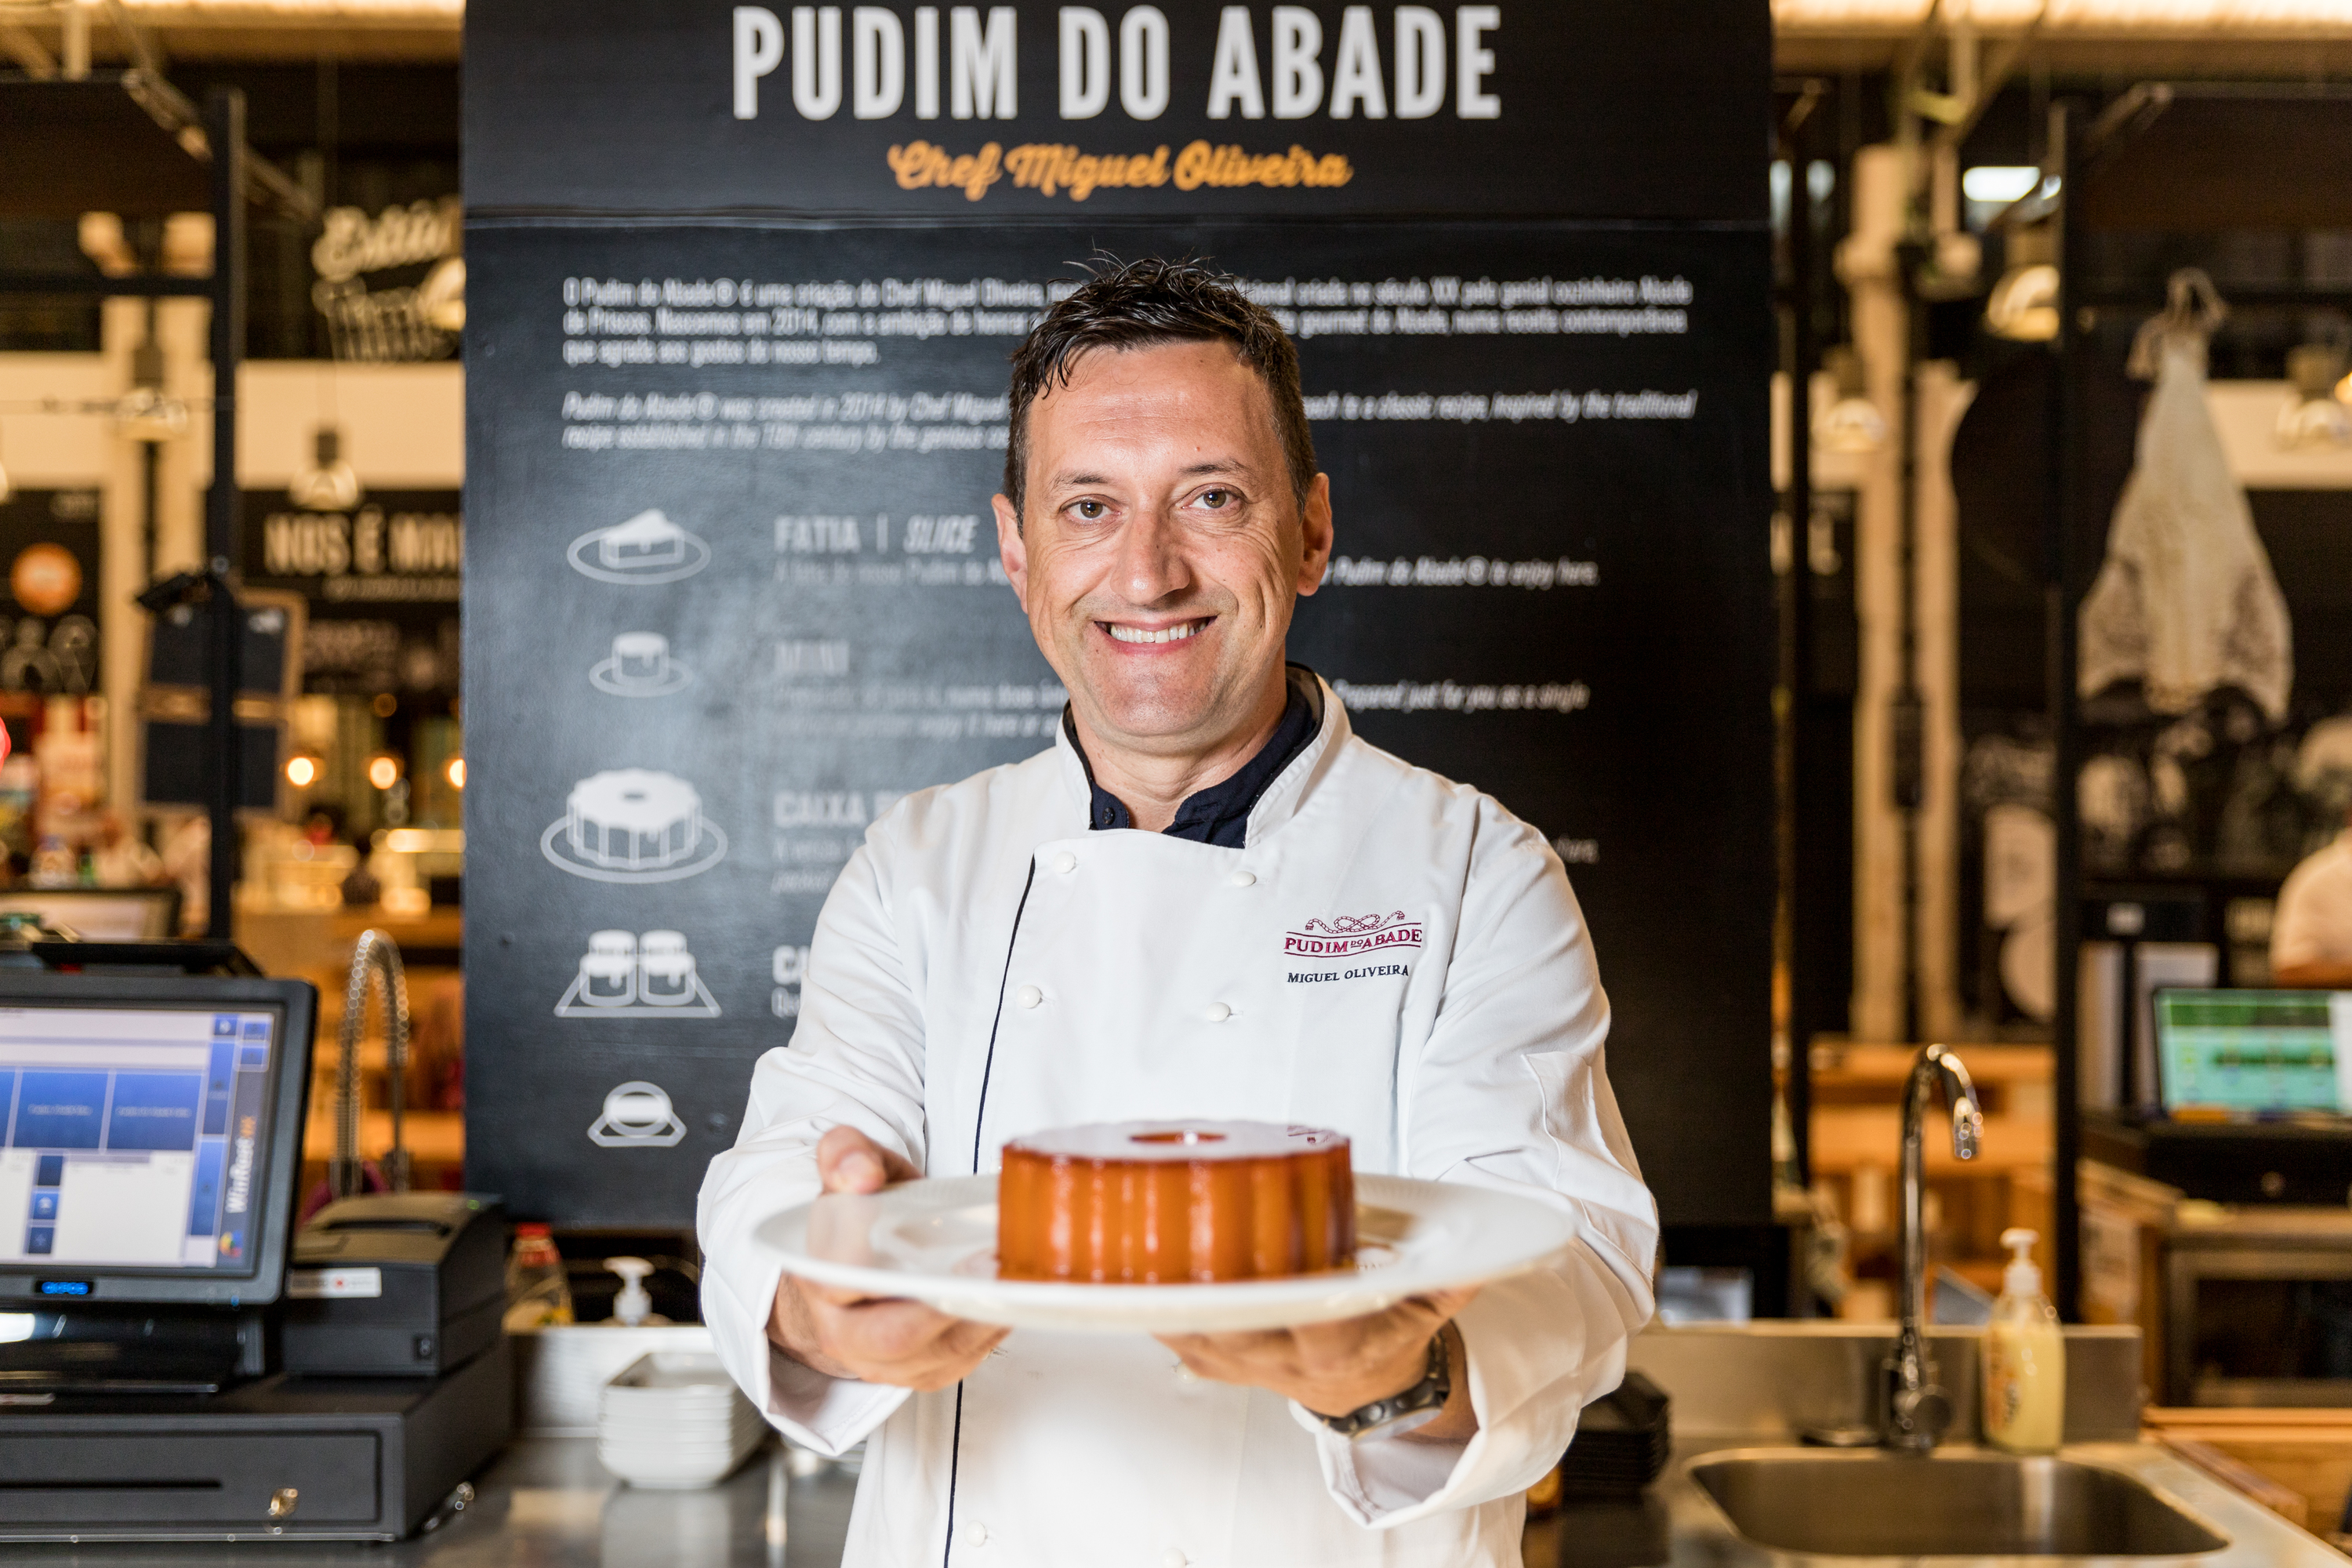 Doces, Pudim do abade, Miguel Oliveira, Time Out Market